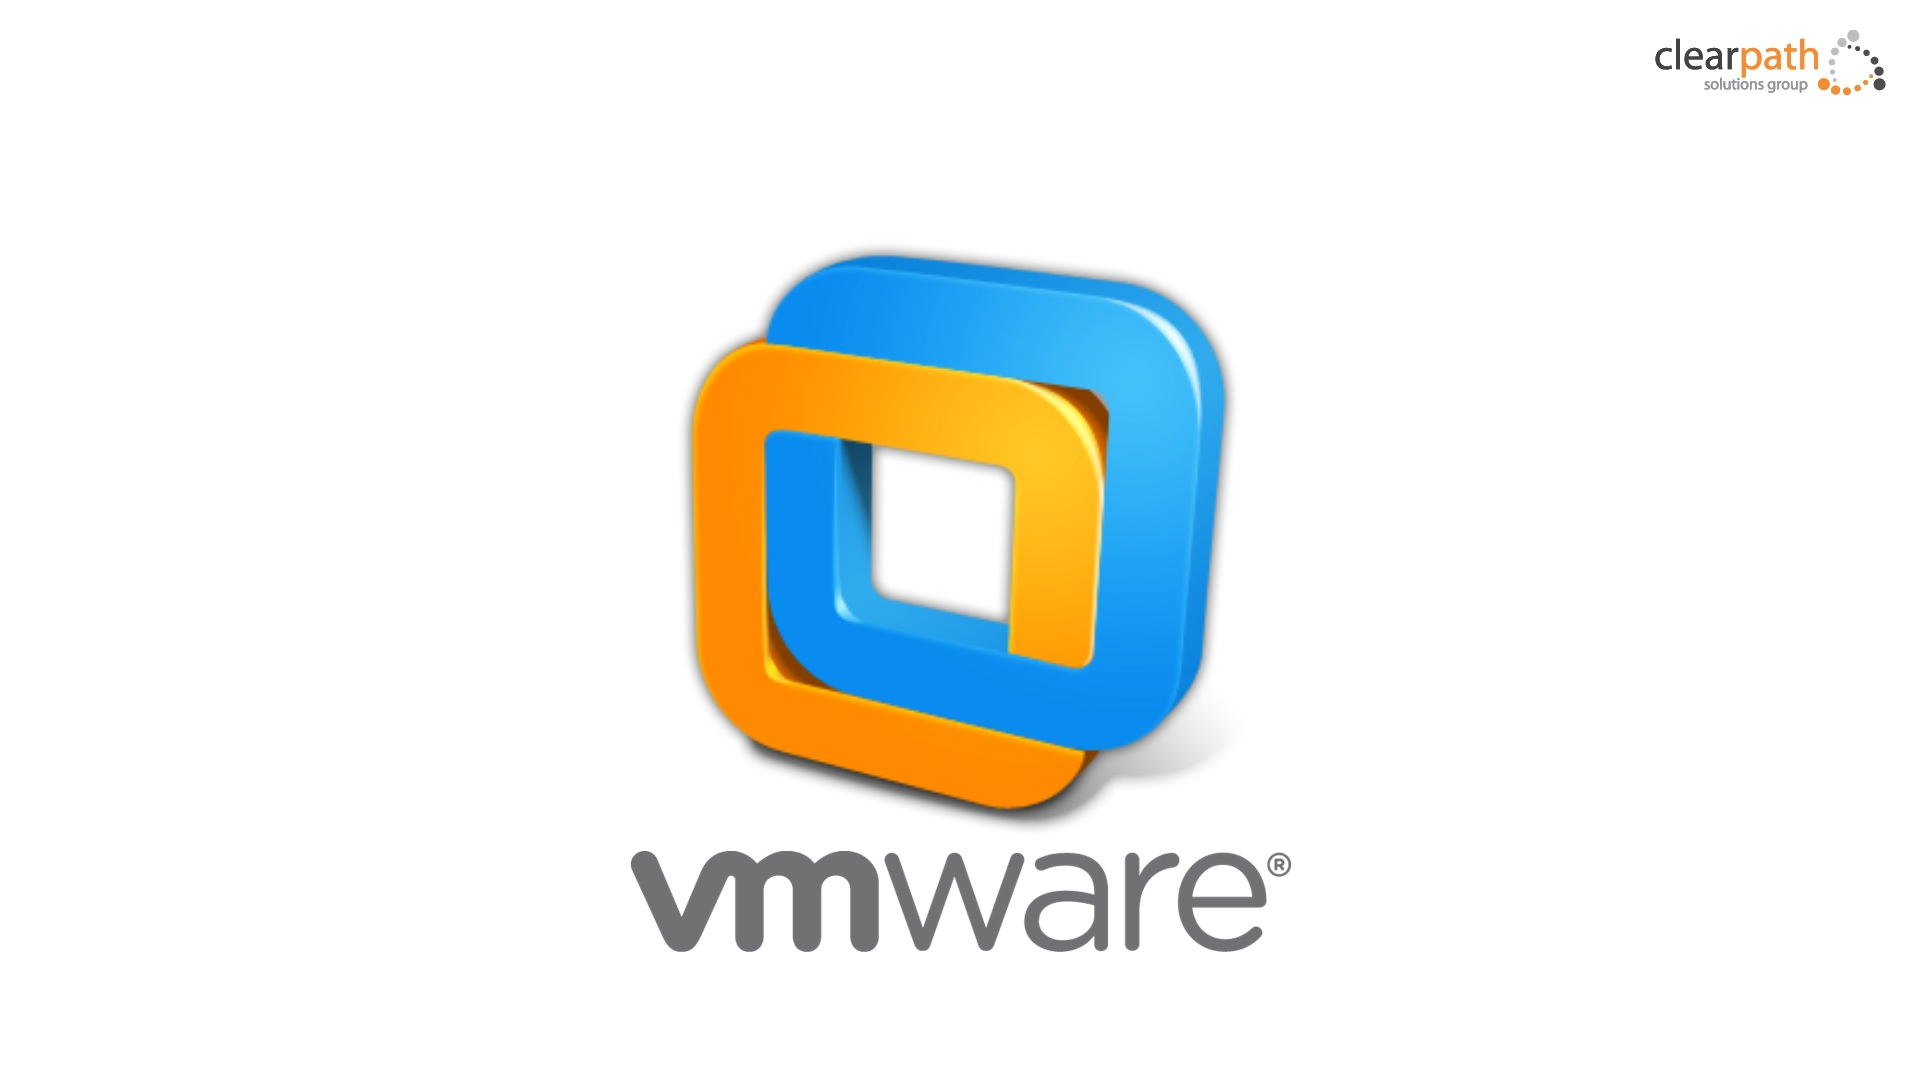 How To Access BIOS in VMWARE & Delay Boot Time - ETHICAL HACKING